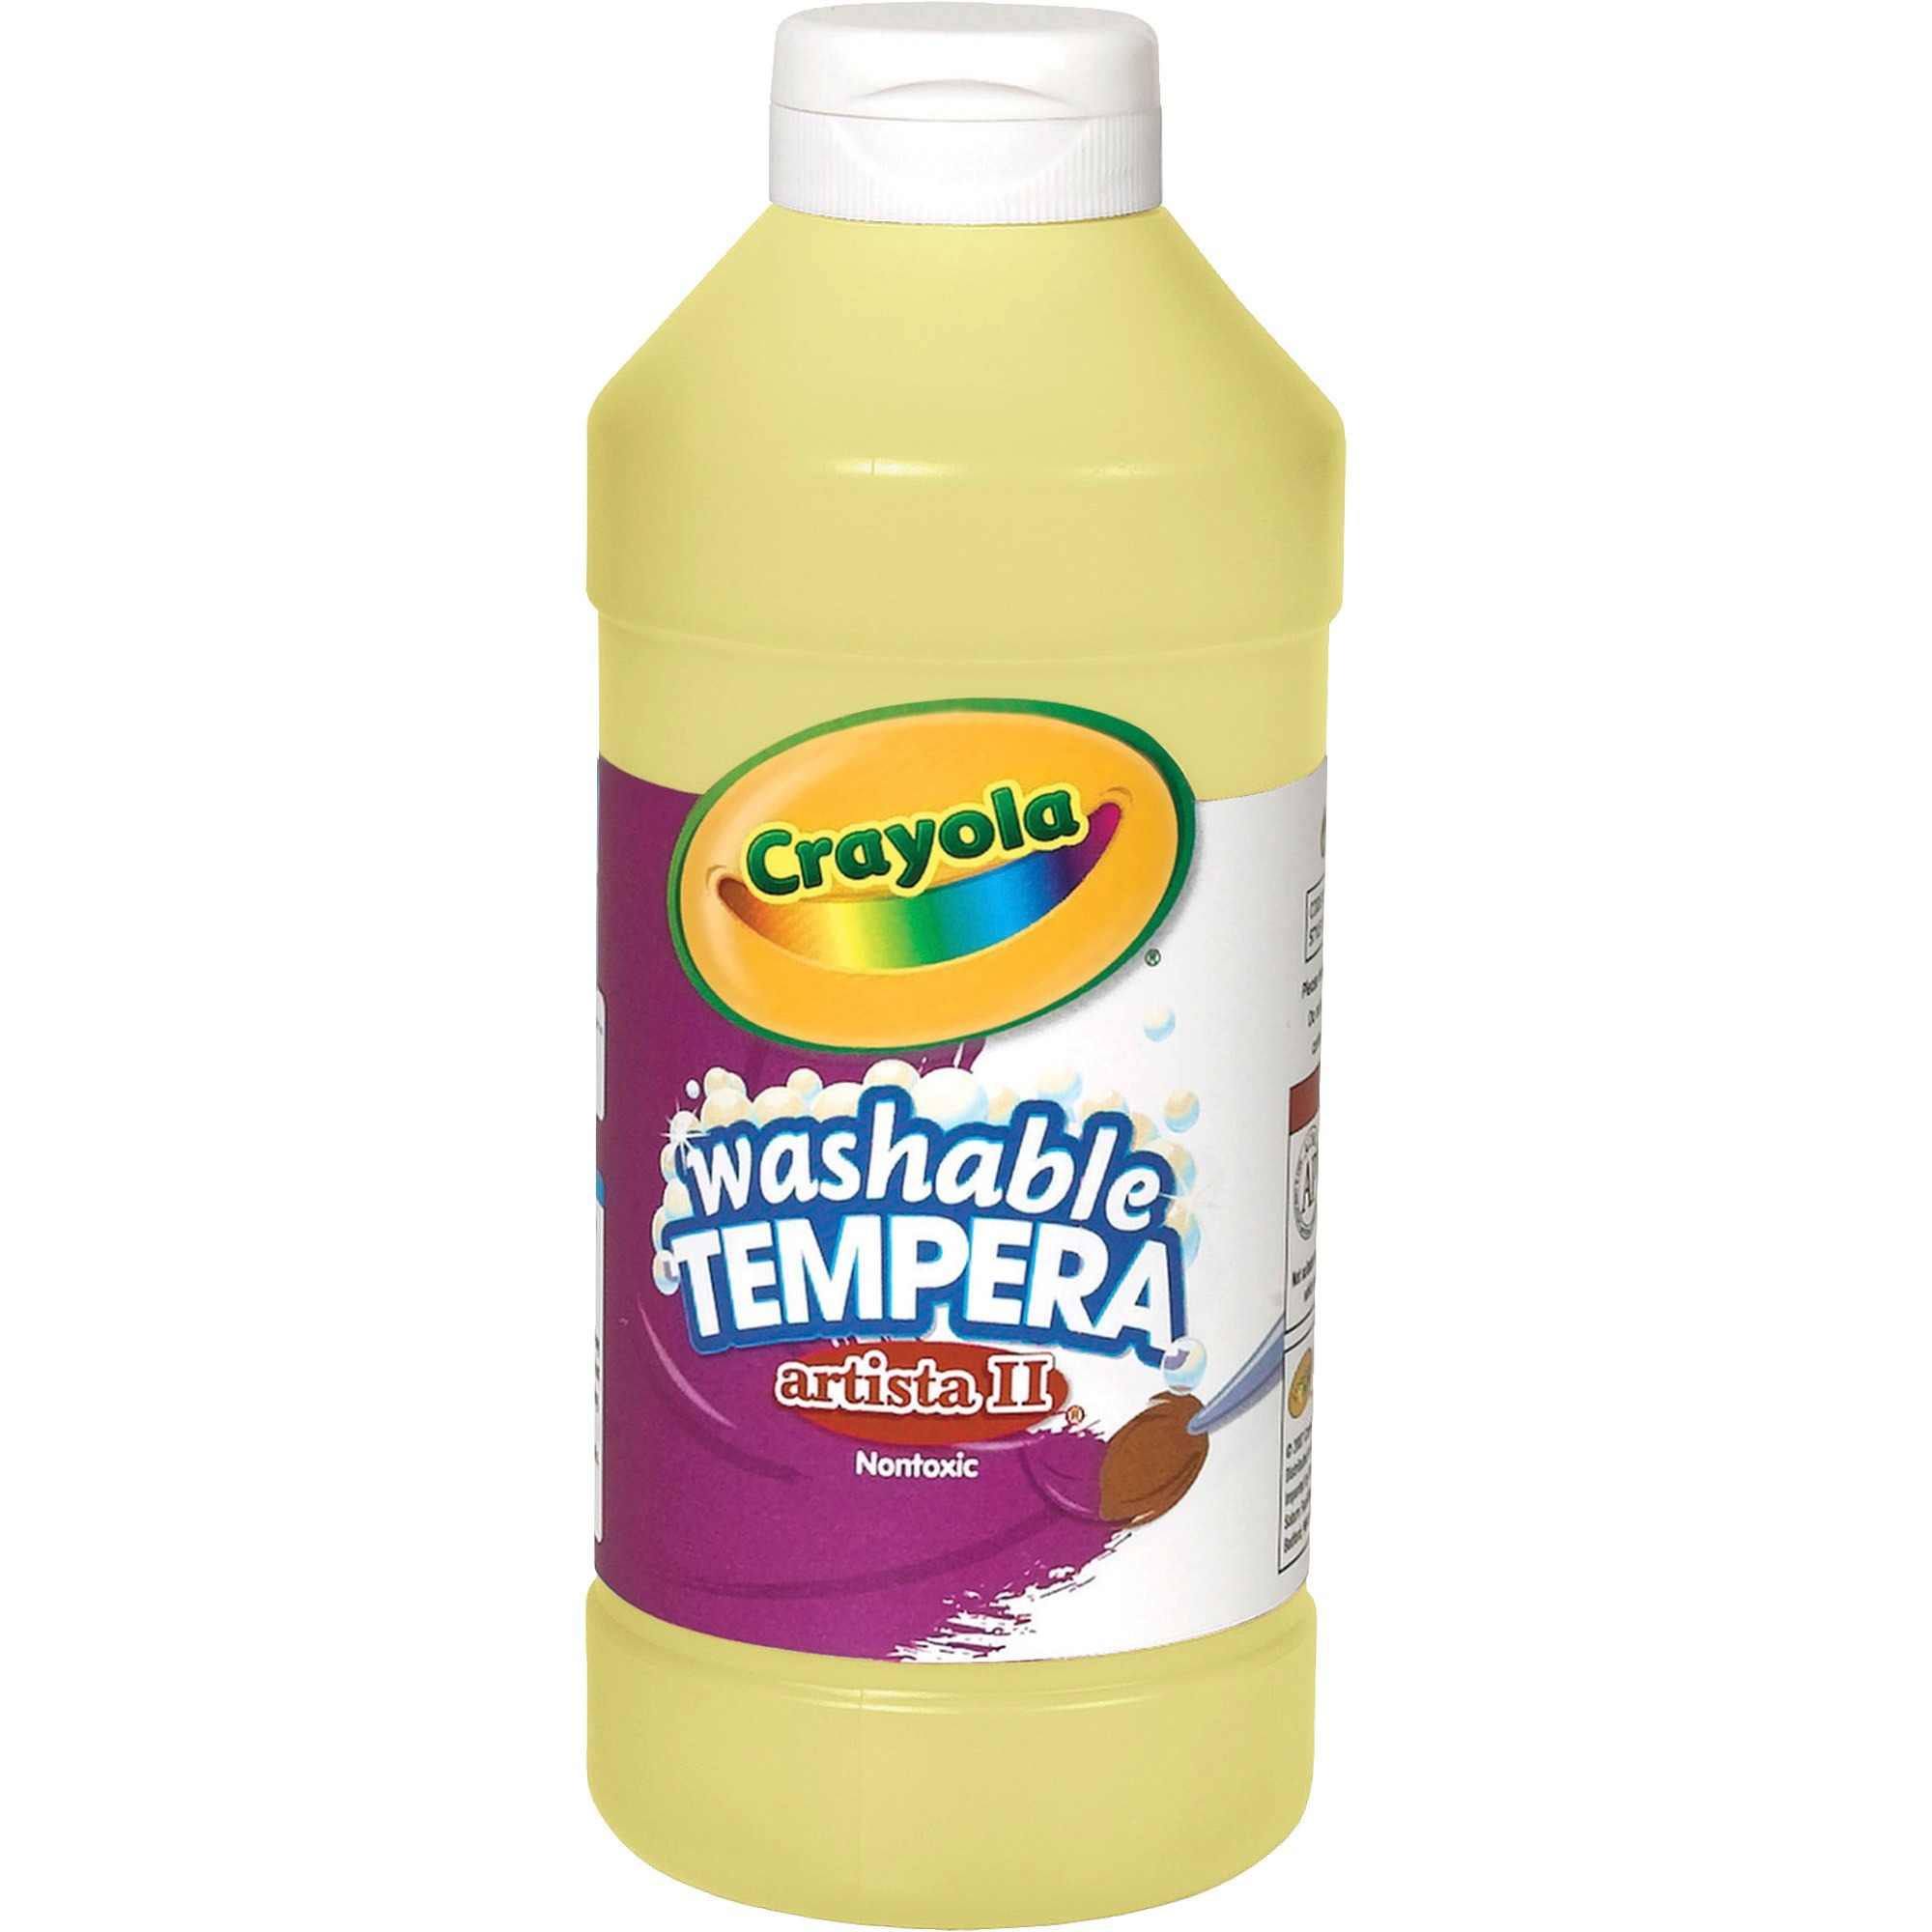 Crayola Artista Ii Non-Toxic Washable Tempera Paint, 1 Pint Squeeze Bottle, Blue